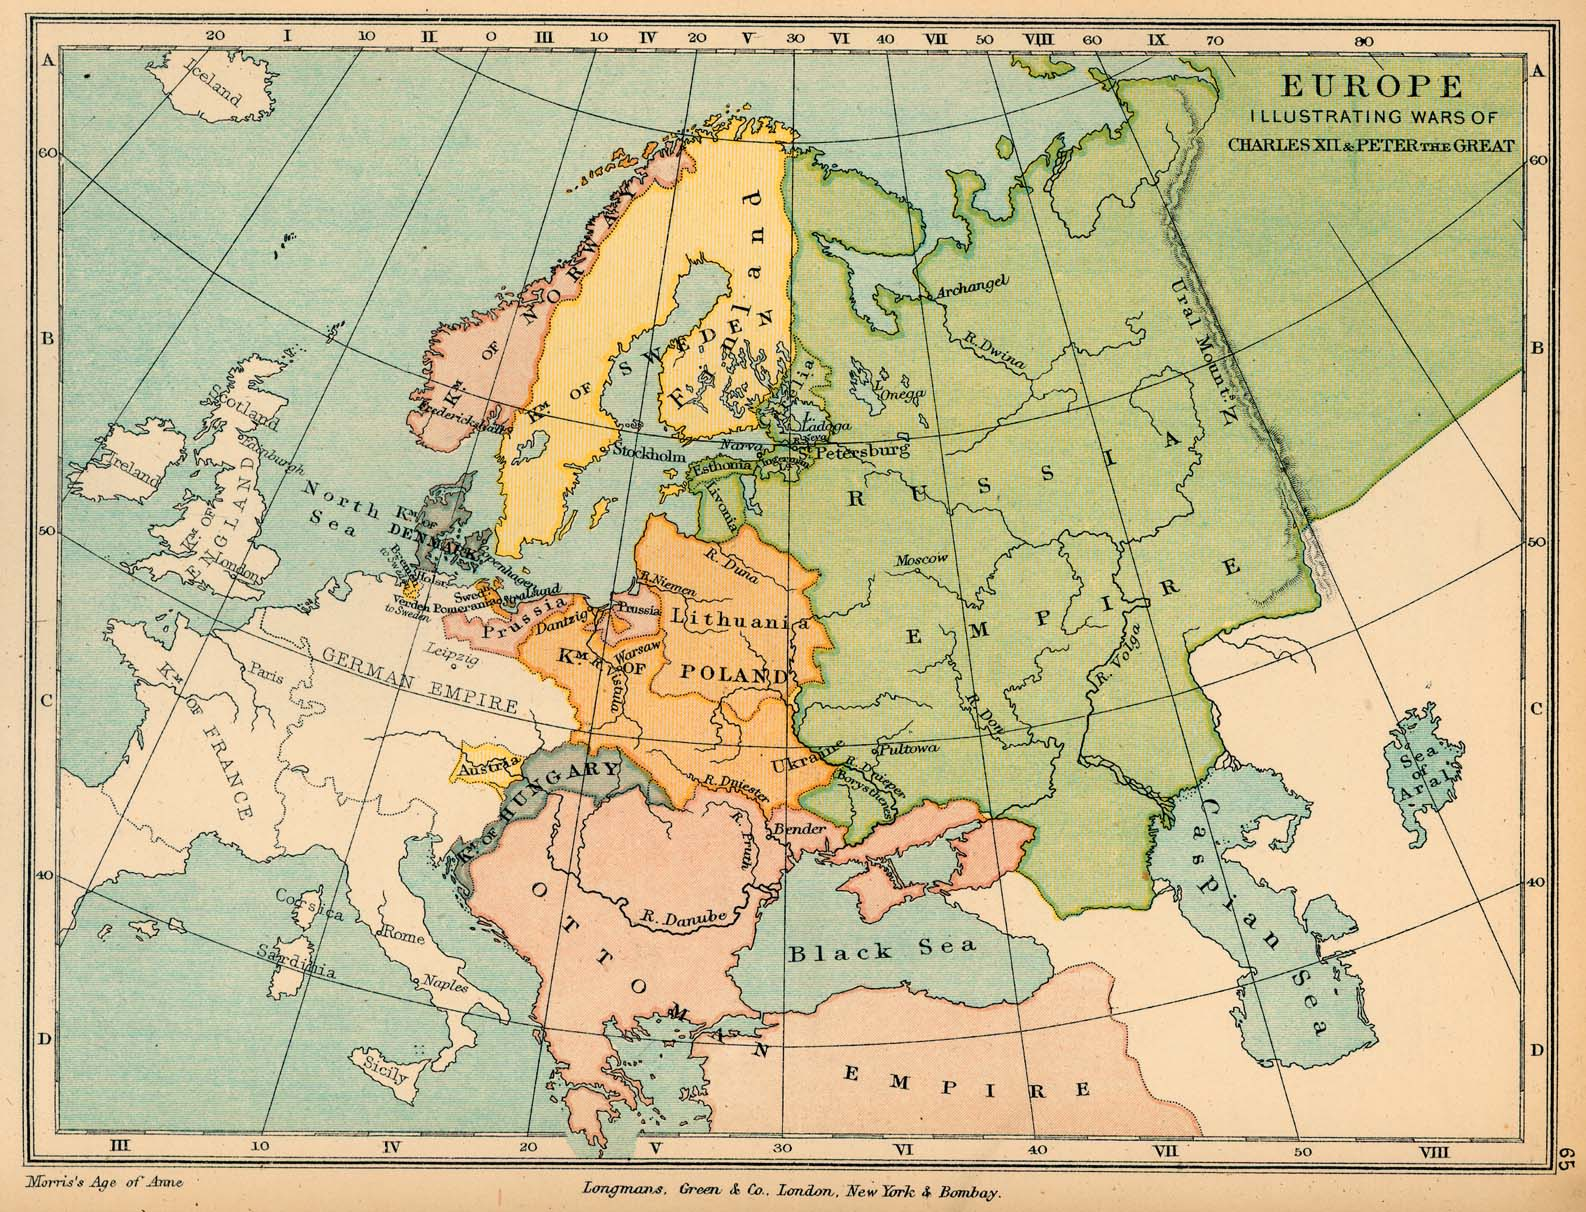 The Great Northern War in Europe 1700-1721